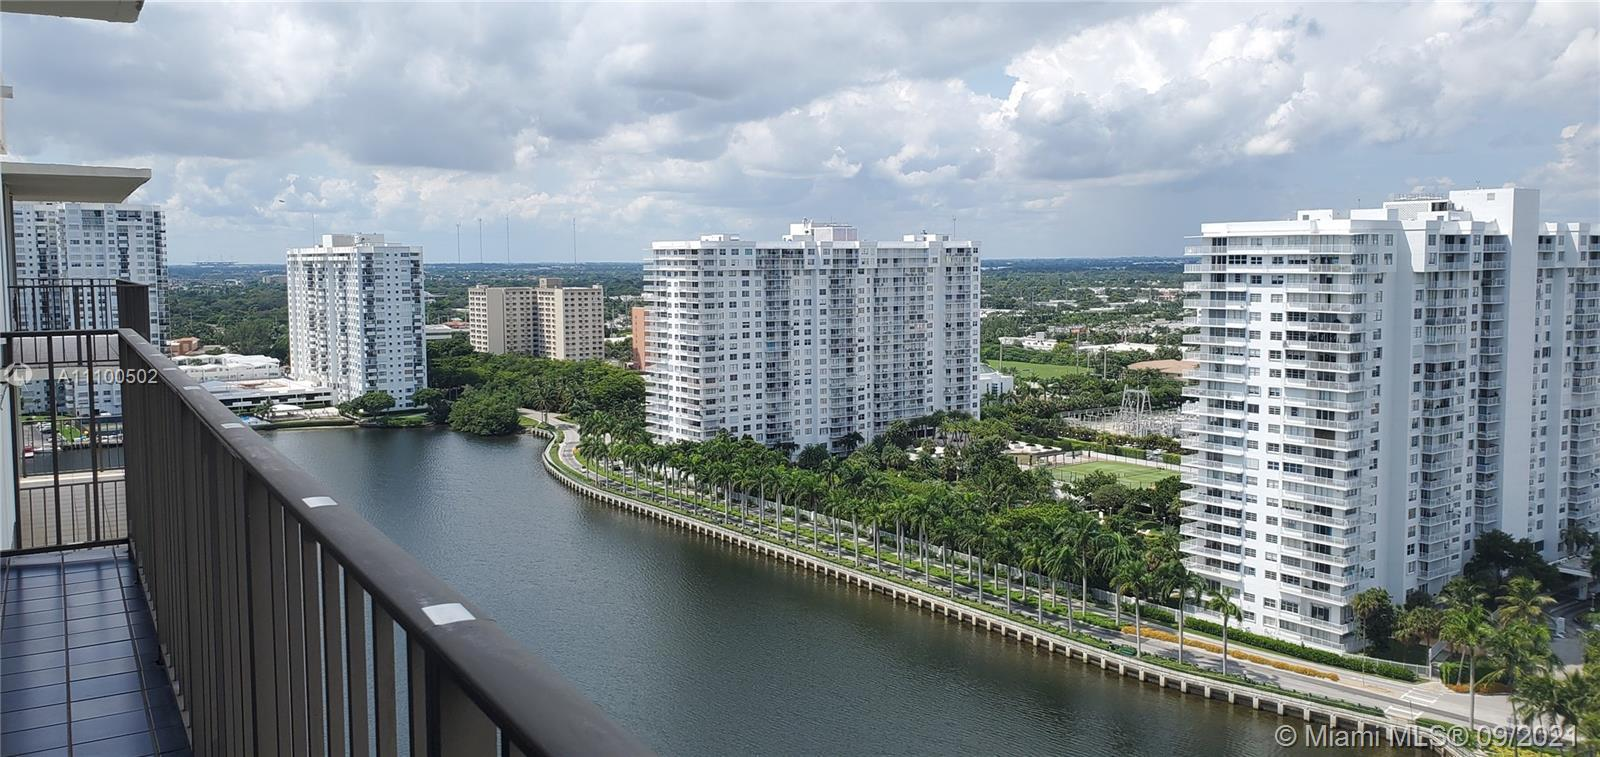 2bed /2bath PENTHOUSE WITH SPECTACULAR WATER VIEWS. LARGE BEDROOMS WITH WATER VIEWS. HURRICANE SHUTT